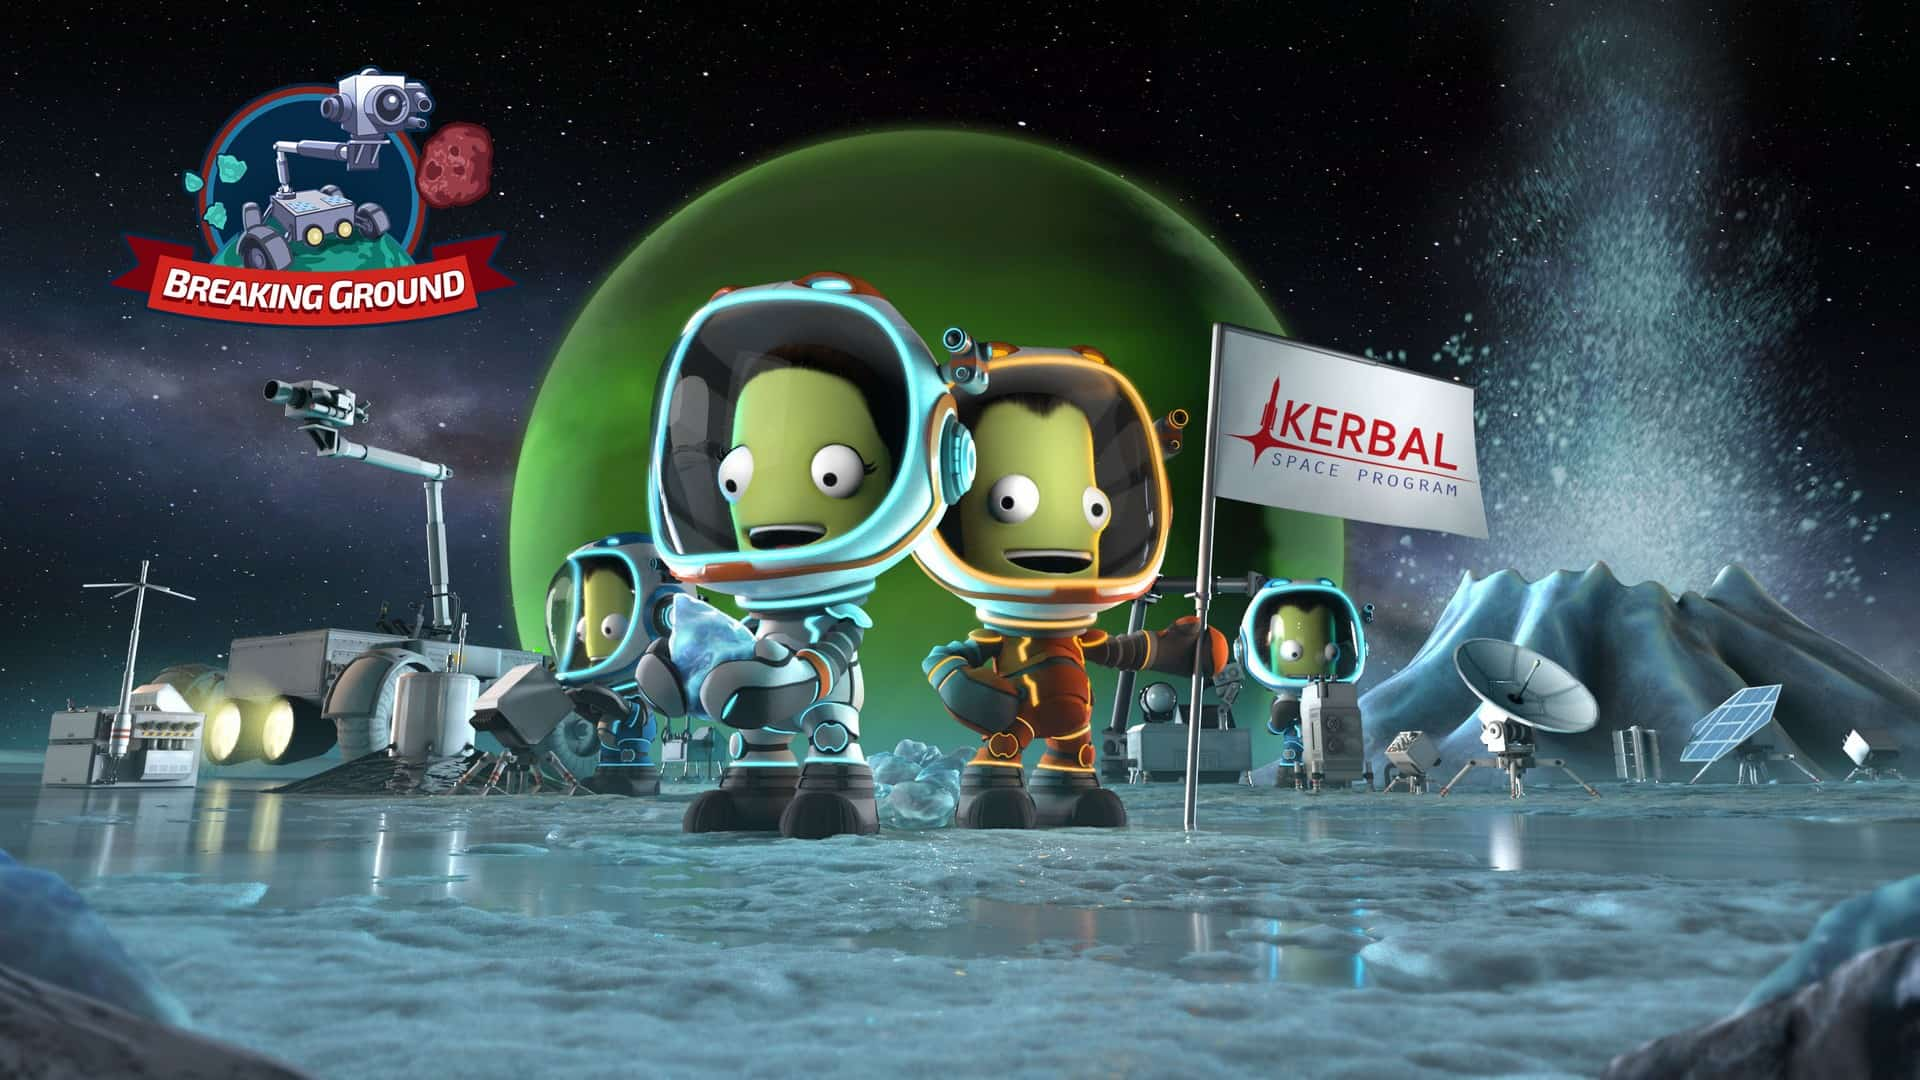 Kerbal Space Program Breaking Ground Expansion Comes To Console This December